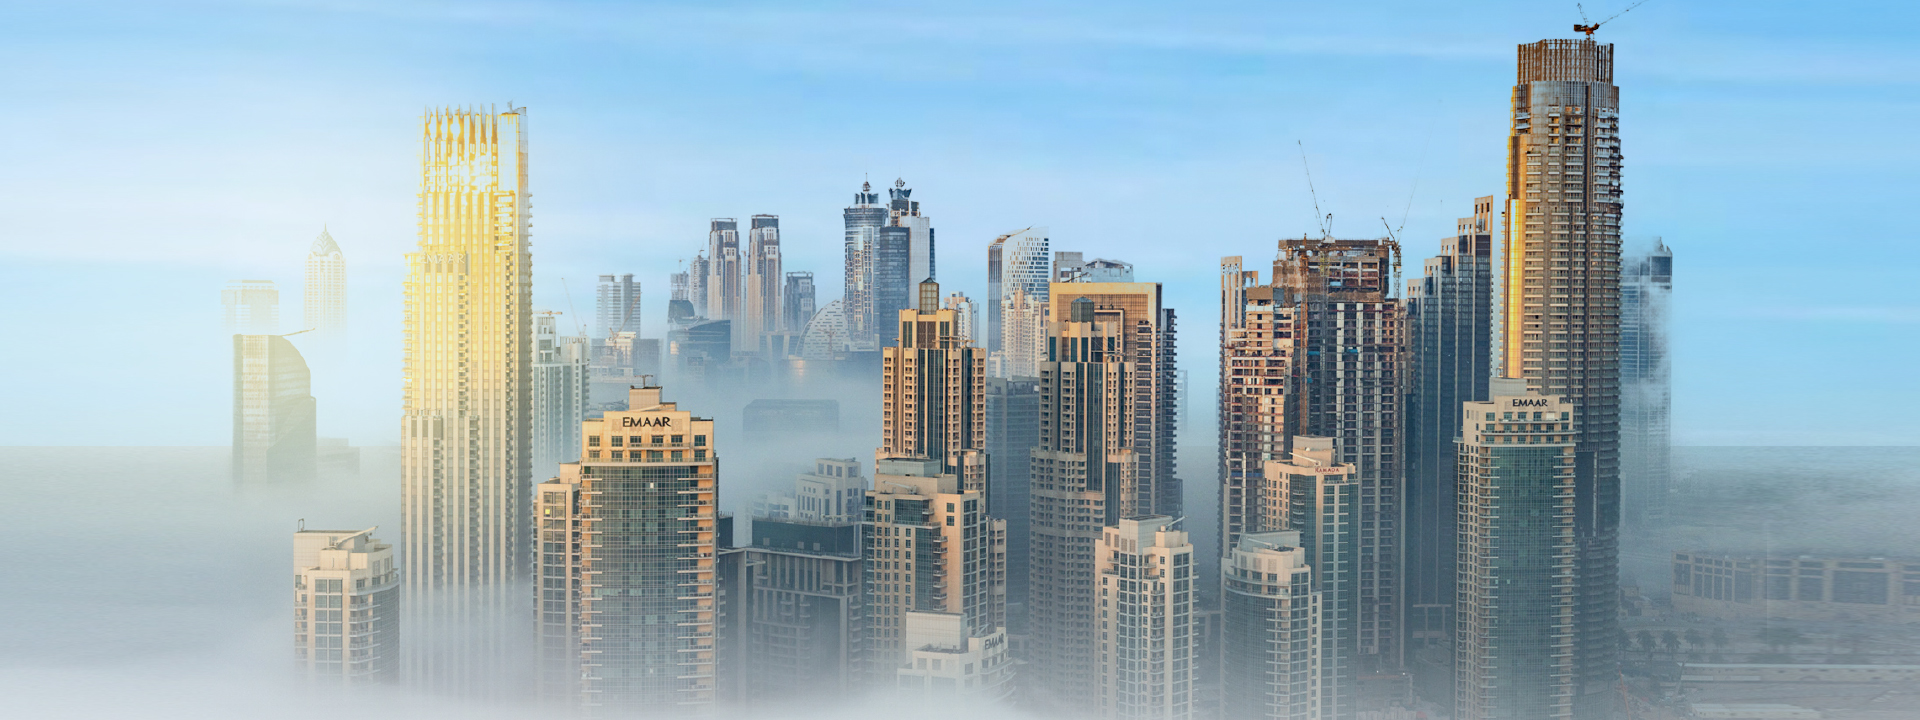 Frequently Asked Questions on How to Buy an Off-plan Property in Dubai This 2021